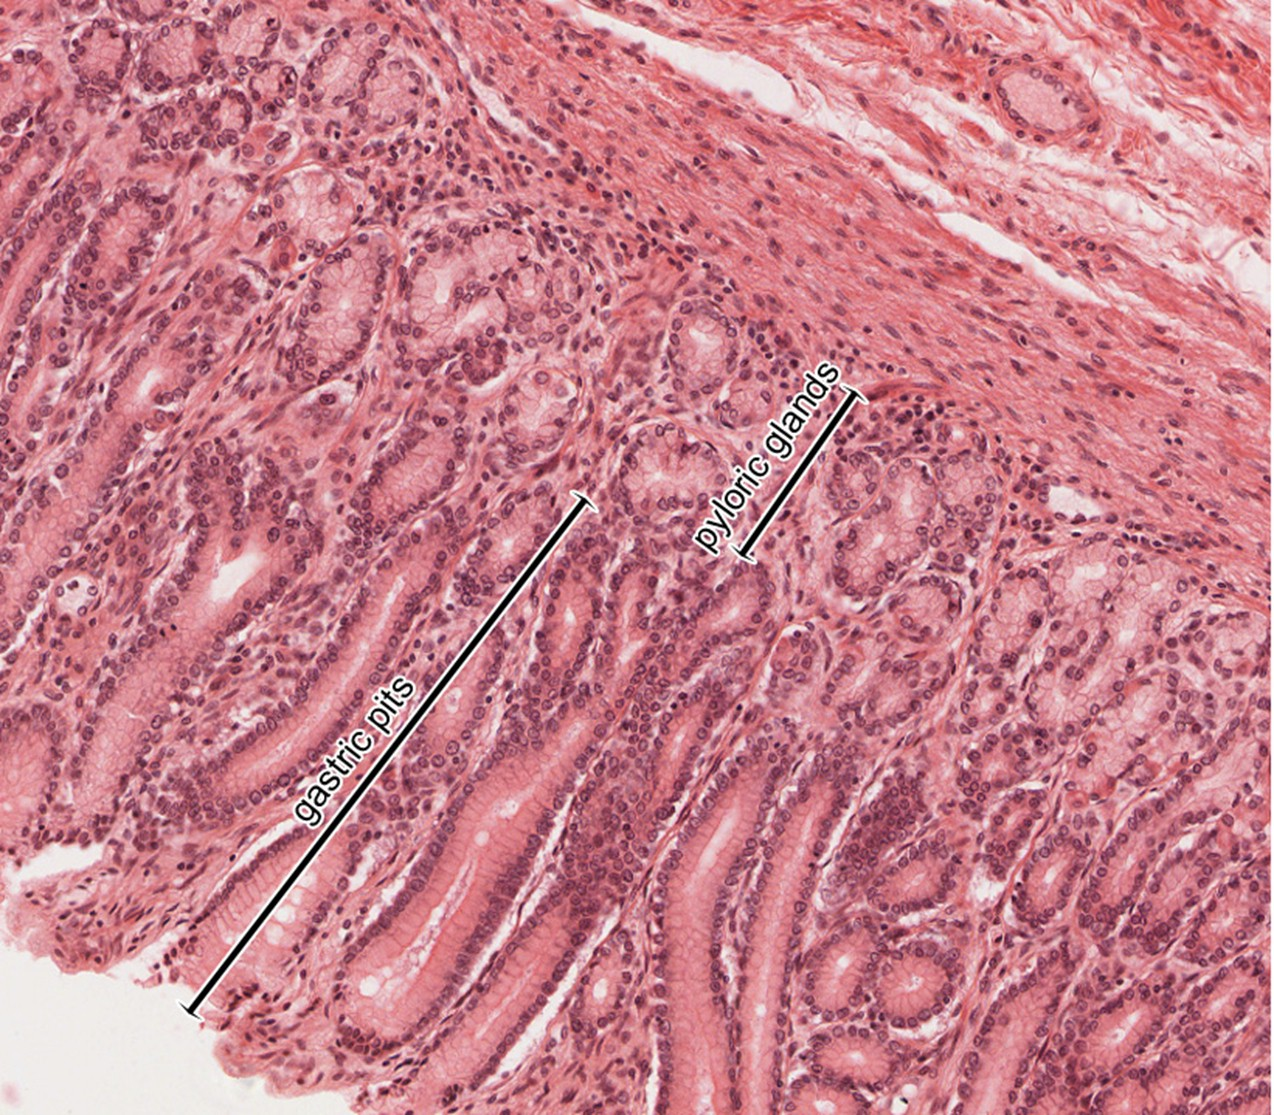 Histology of the Esophagus and Stomach